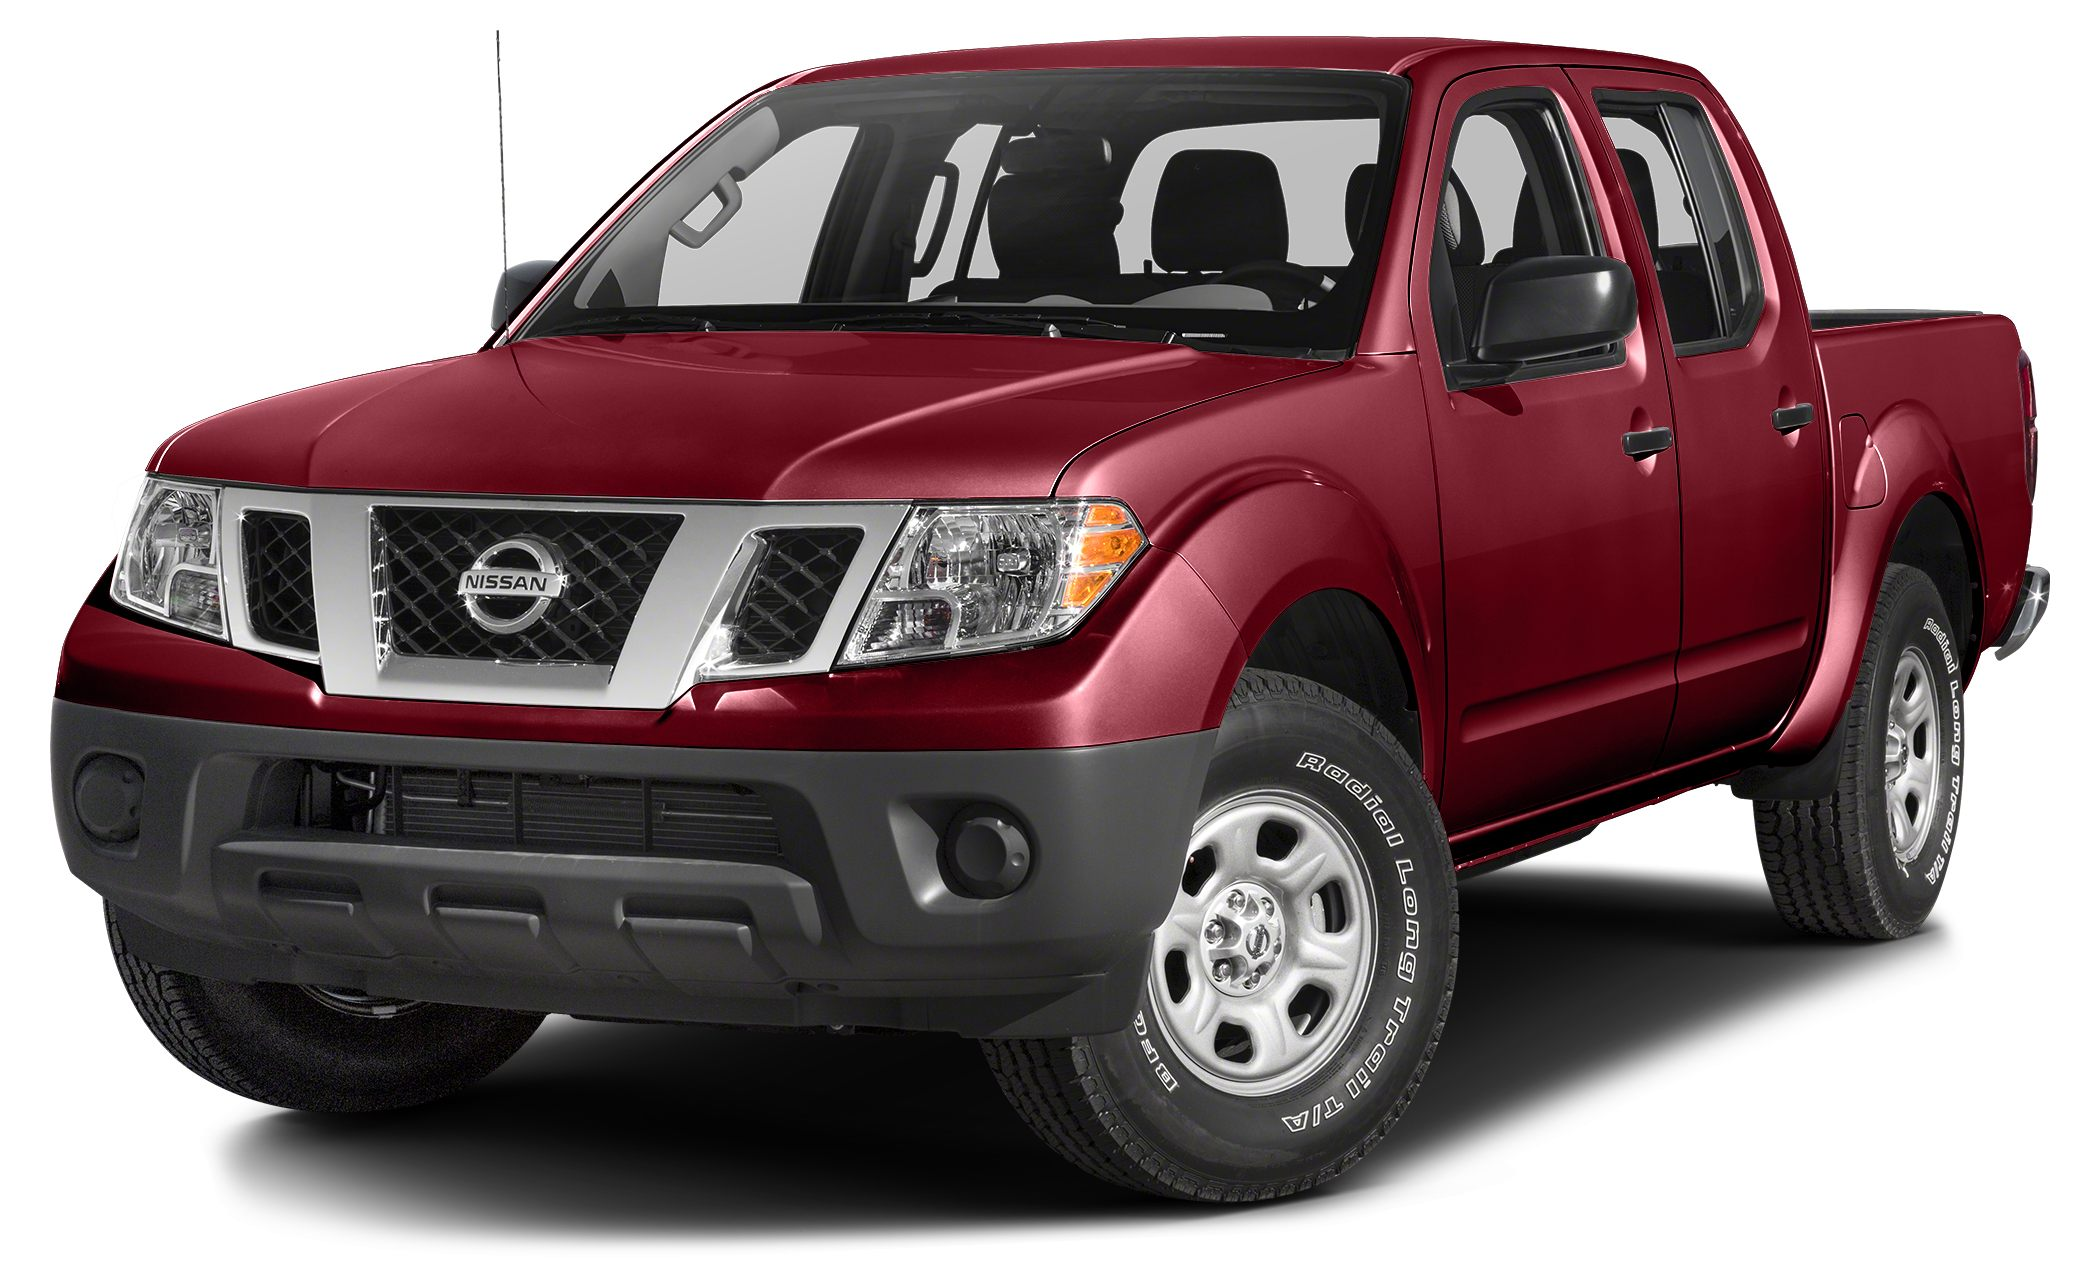 2018 Nissan Frontier S Miles 9Color Red Stock 7180441 VIN 1N6AD0ER0JN741055